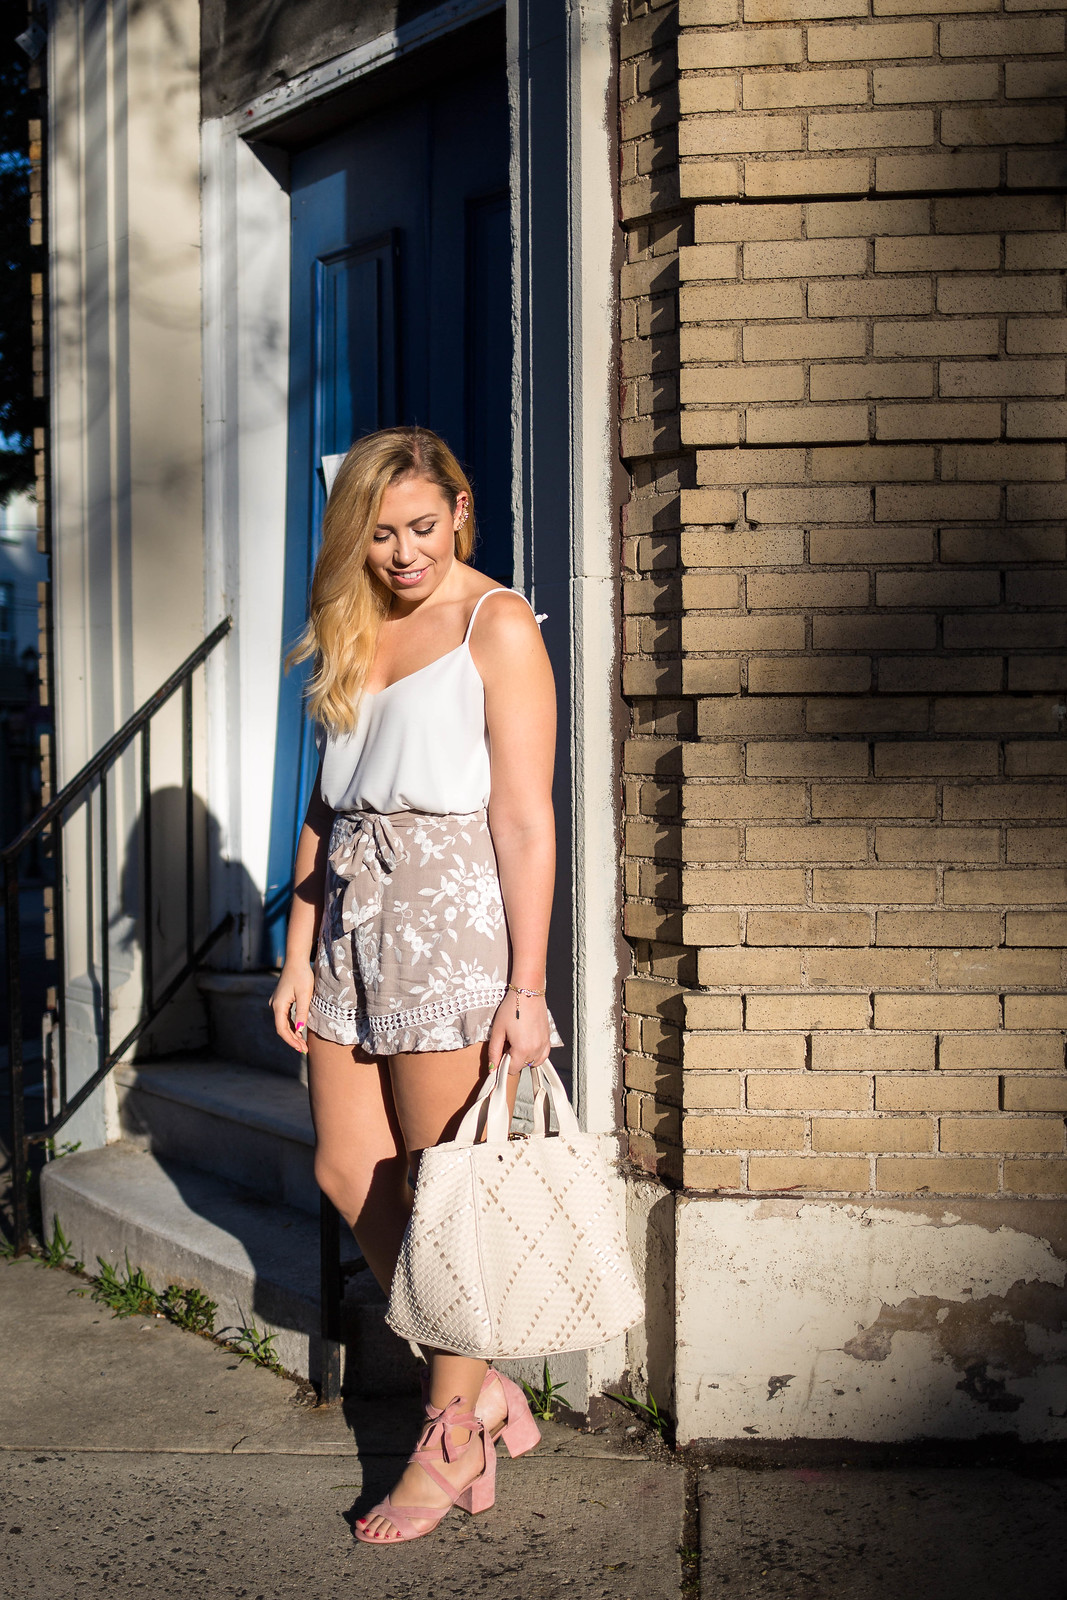 Neutral Summer Outfit Embroidered Tan Shorts Topshop Rouleau Swing White Camisole Deux Lux Barrow Tote